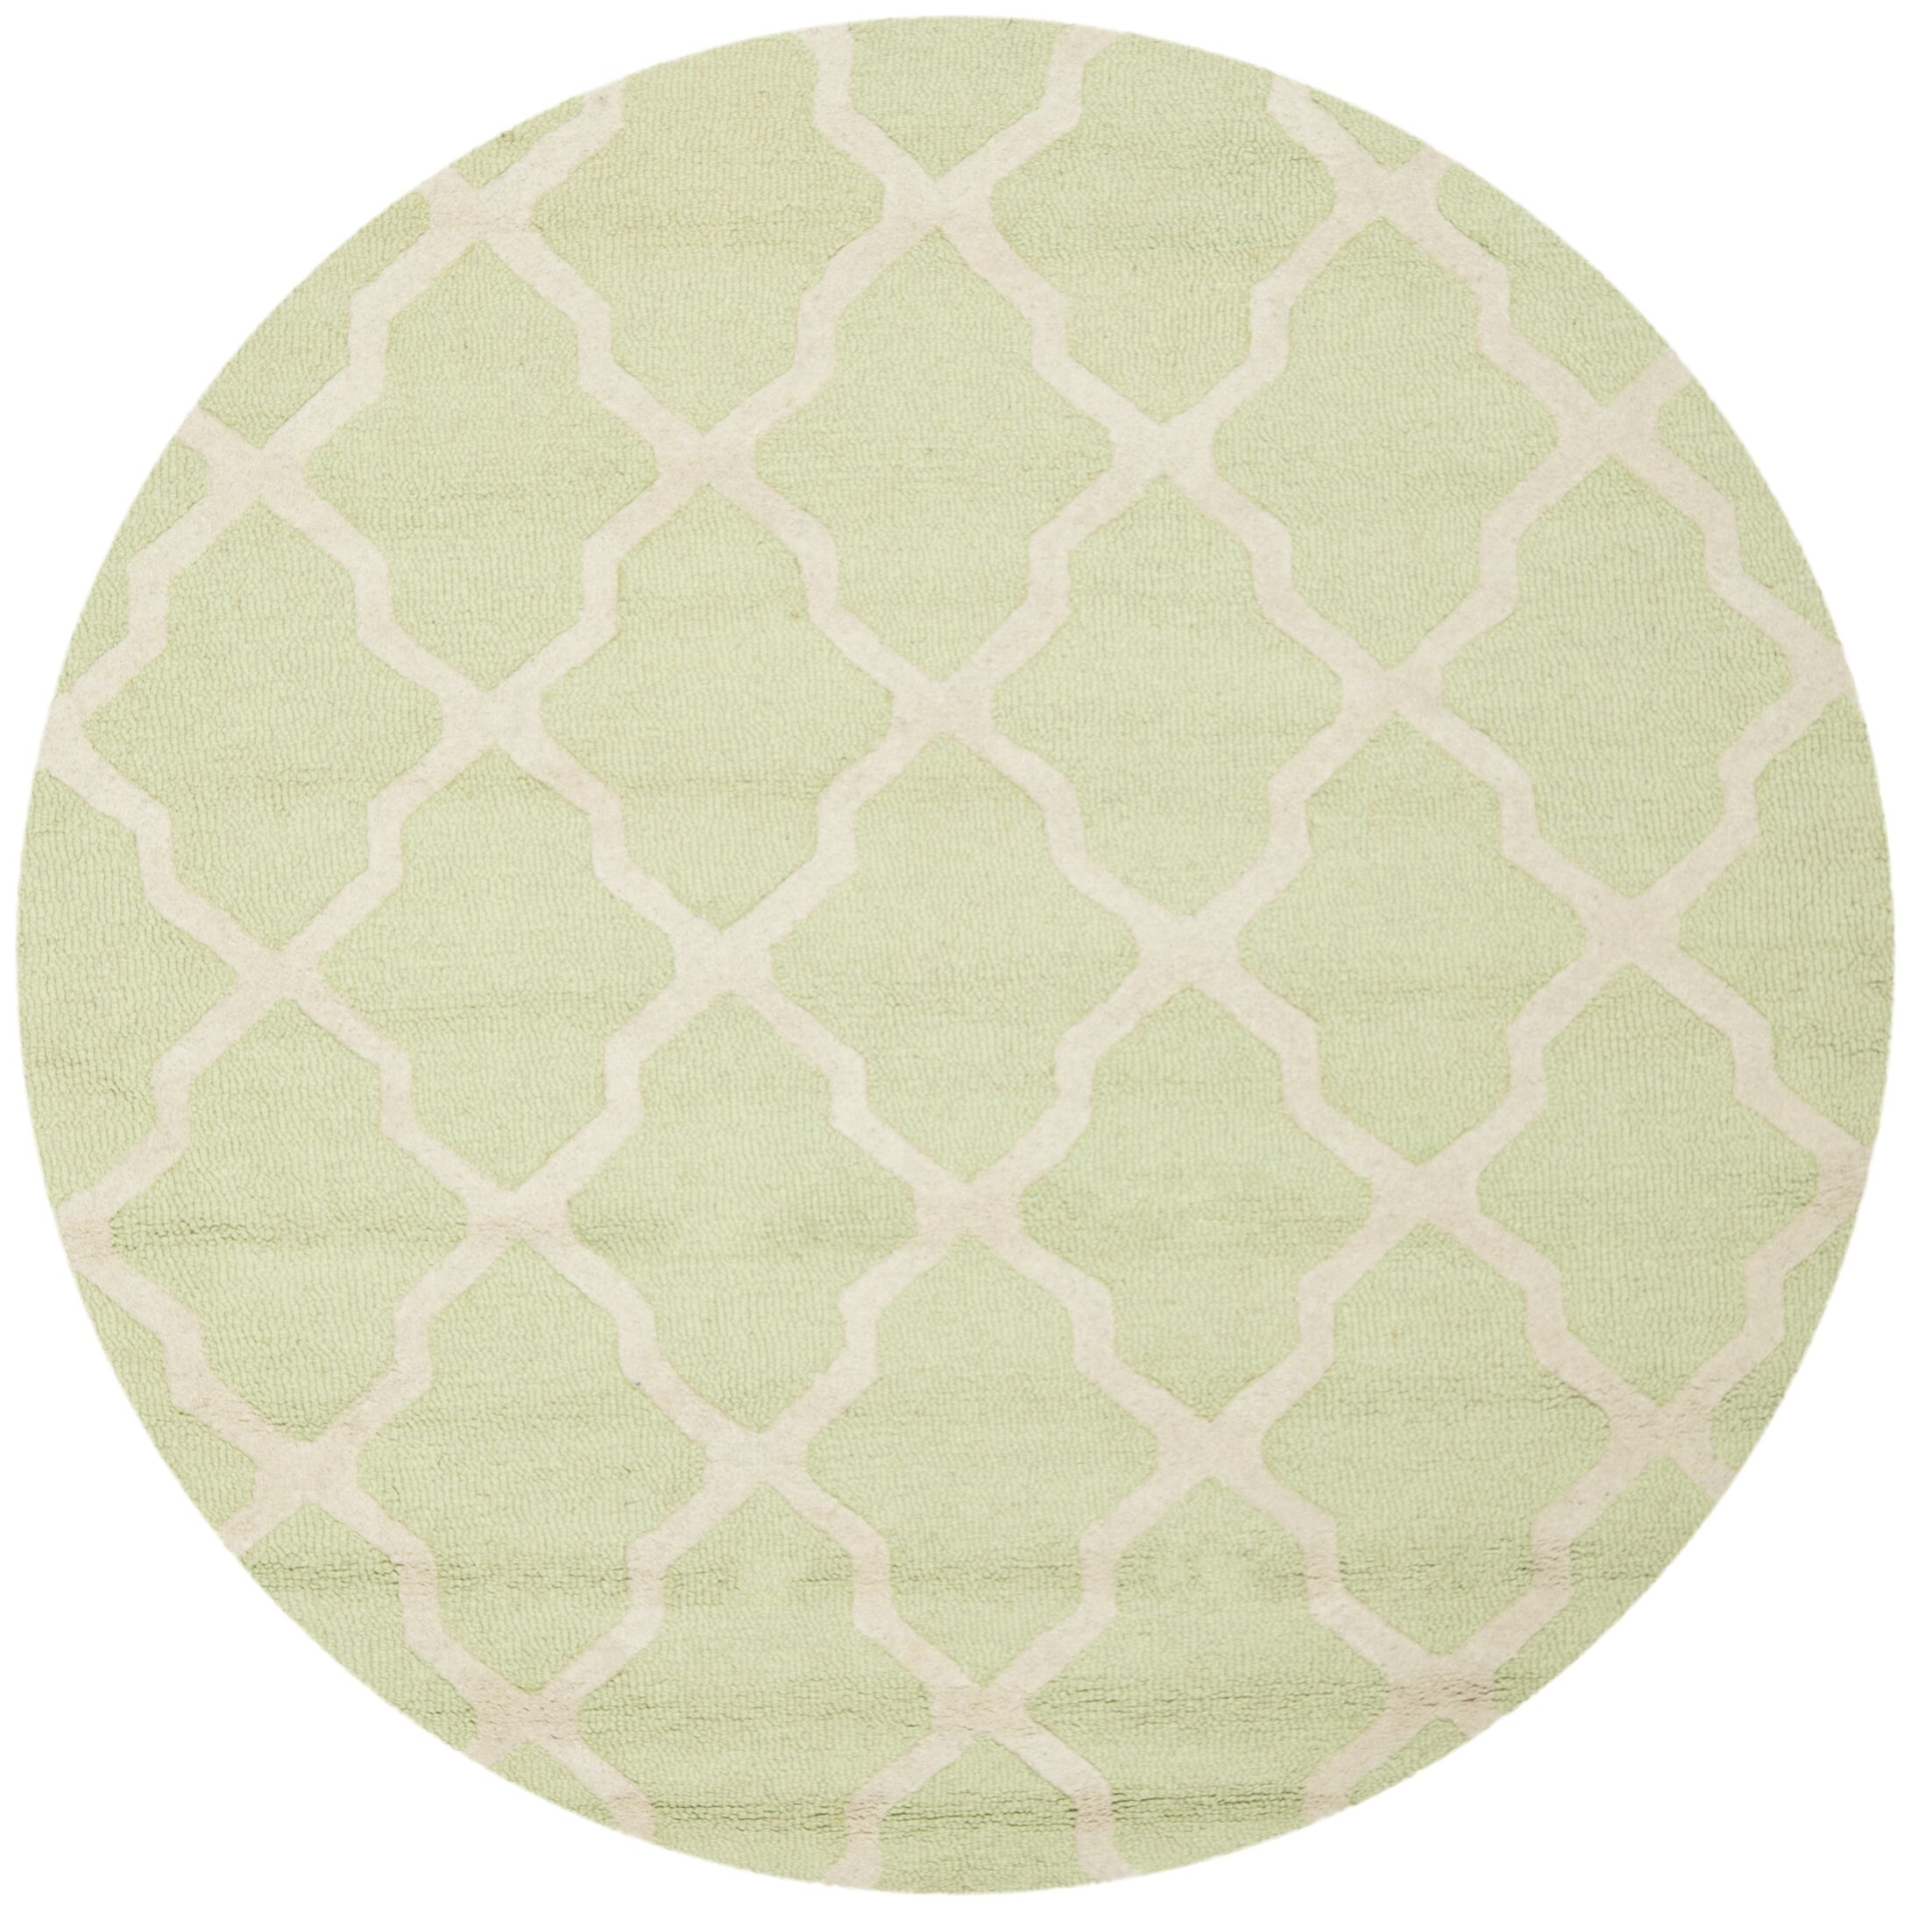 Charlenne Hand-Tufted/Hand-Hooked Light Green/Ivory Area Rug Rug Size: Round 6'